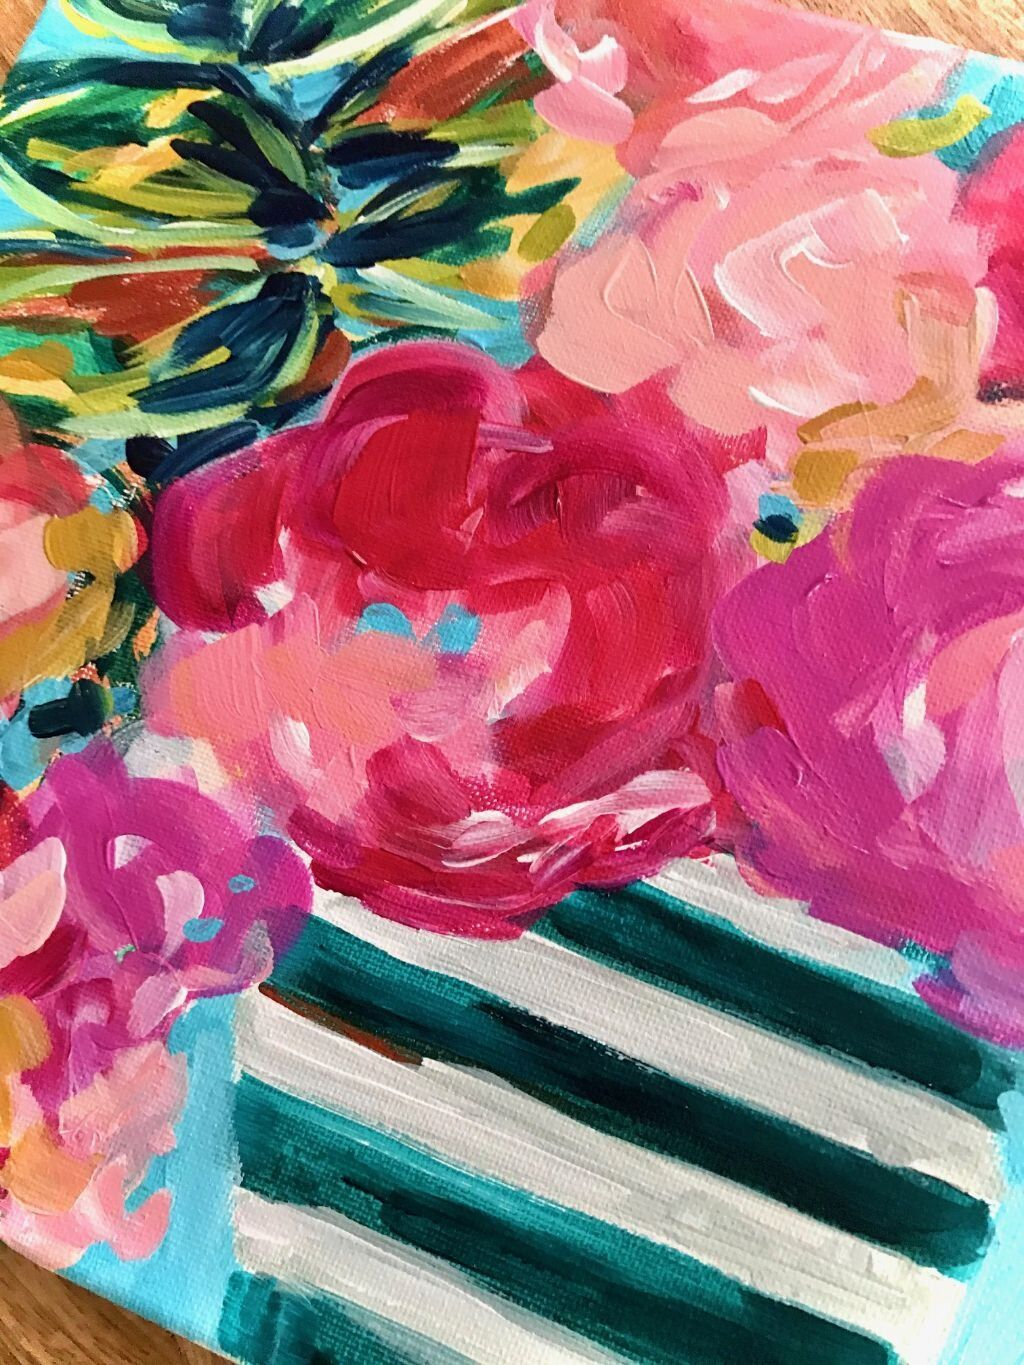 Ideas For Painting Easy Abstract Flowers On Canvas With Acrylic Paint For Beginners Step By Ste In 2020 Abstract Flower Painting Flower Painting Flower Painting Canvas